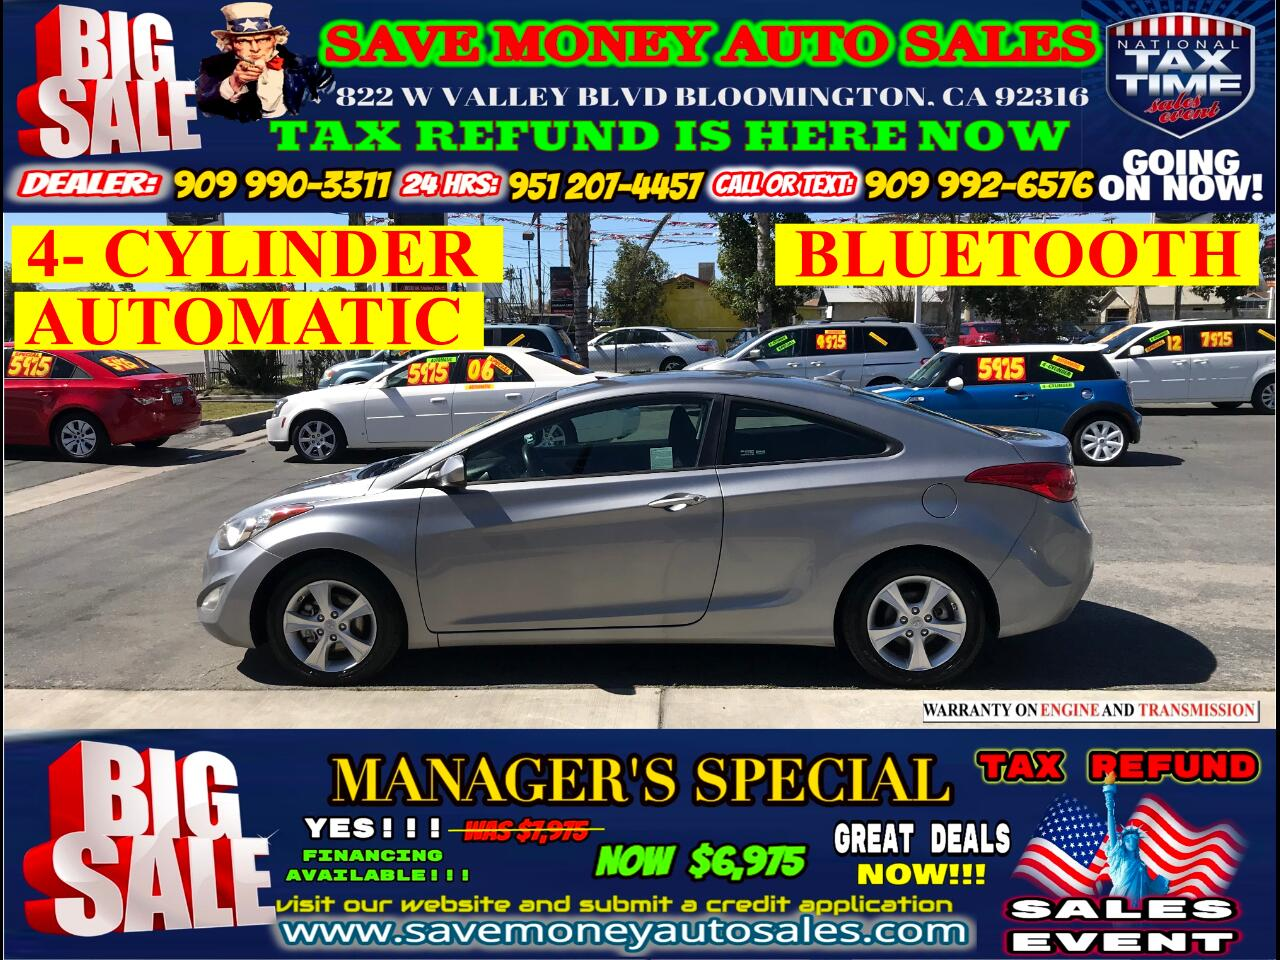 2013 Hyundai Elantra GS COUPE> AUTOMATIC> 4- CYLINDER>EXTRA CLEAN>